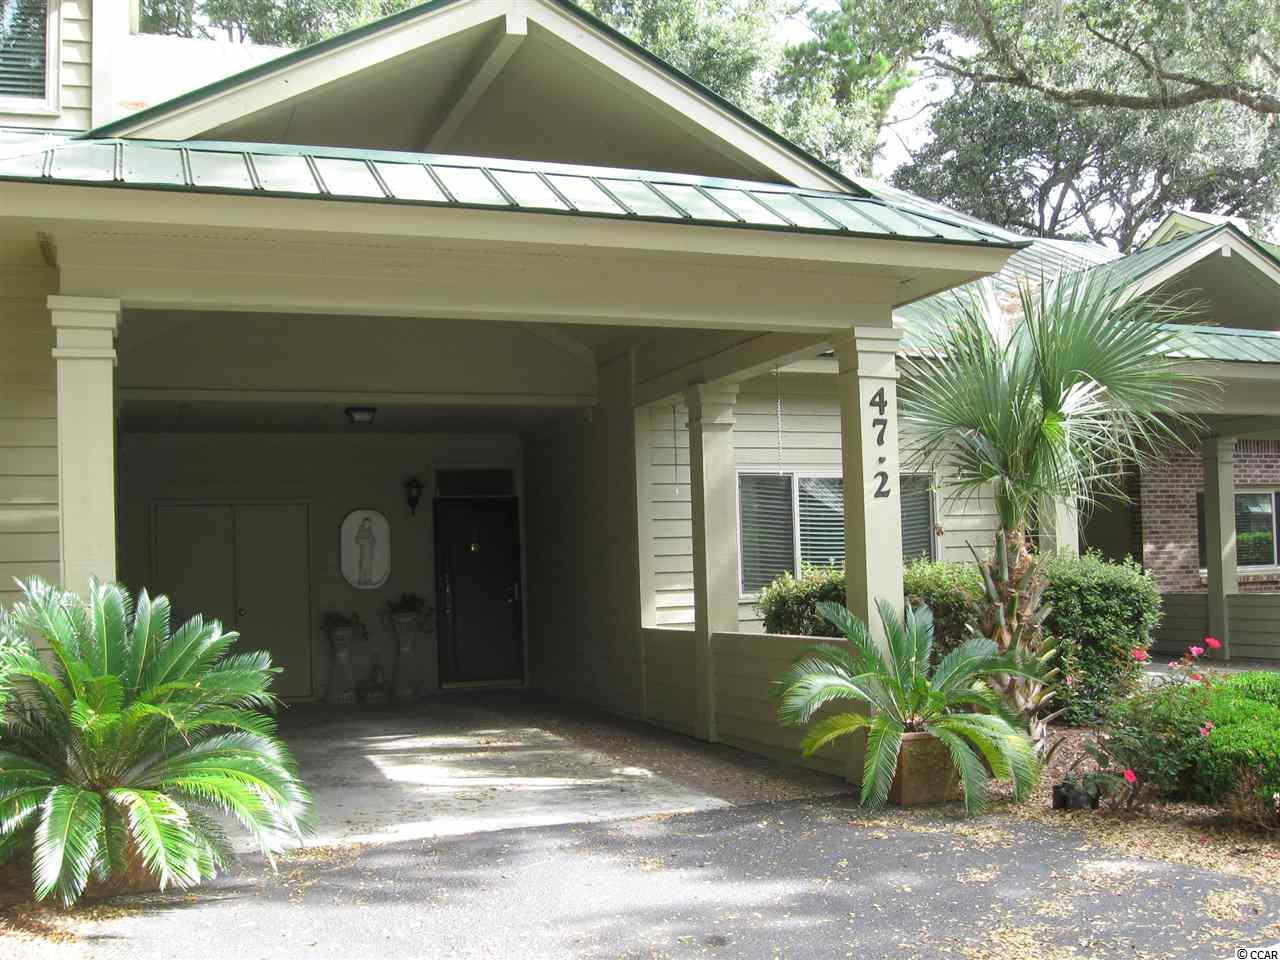 Townhouse for Sale at 47 Twelve Oaks Drive 47 Twelve Oaks Drive Pawleys Island, South Carolina 29585 United States